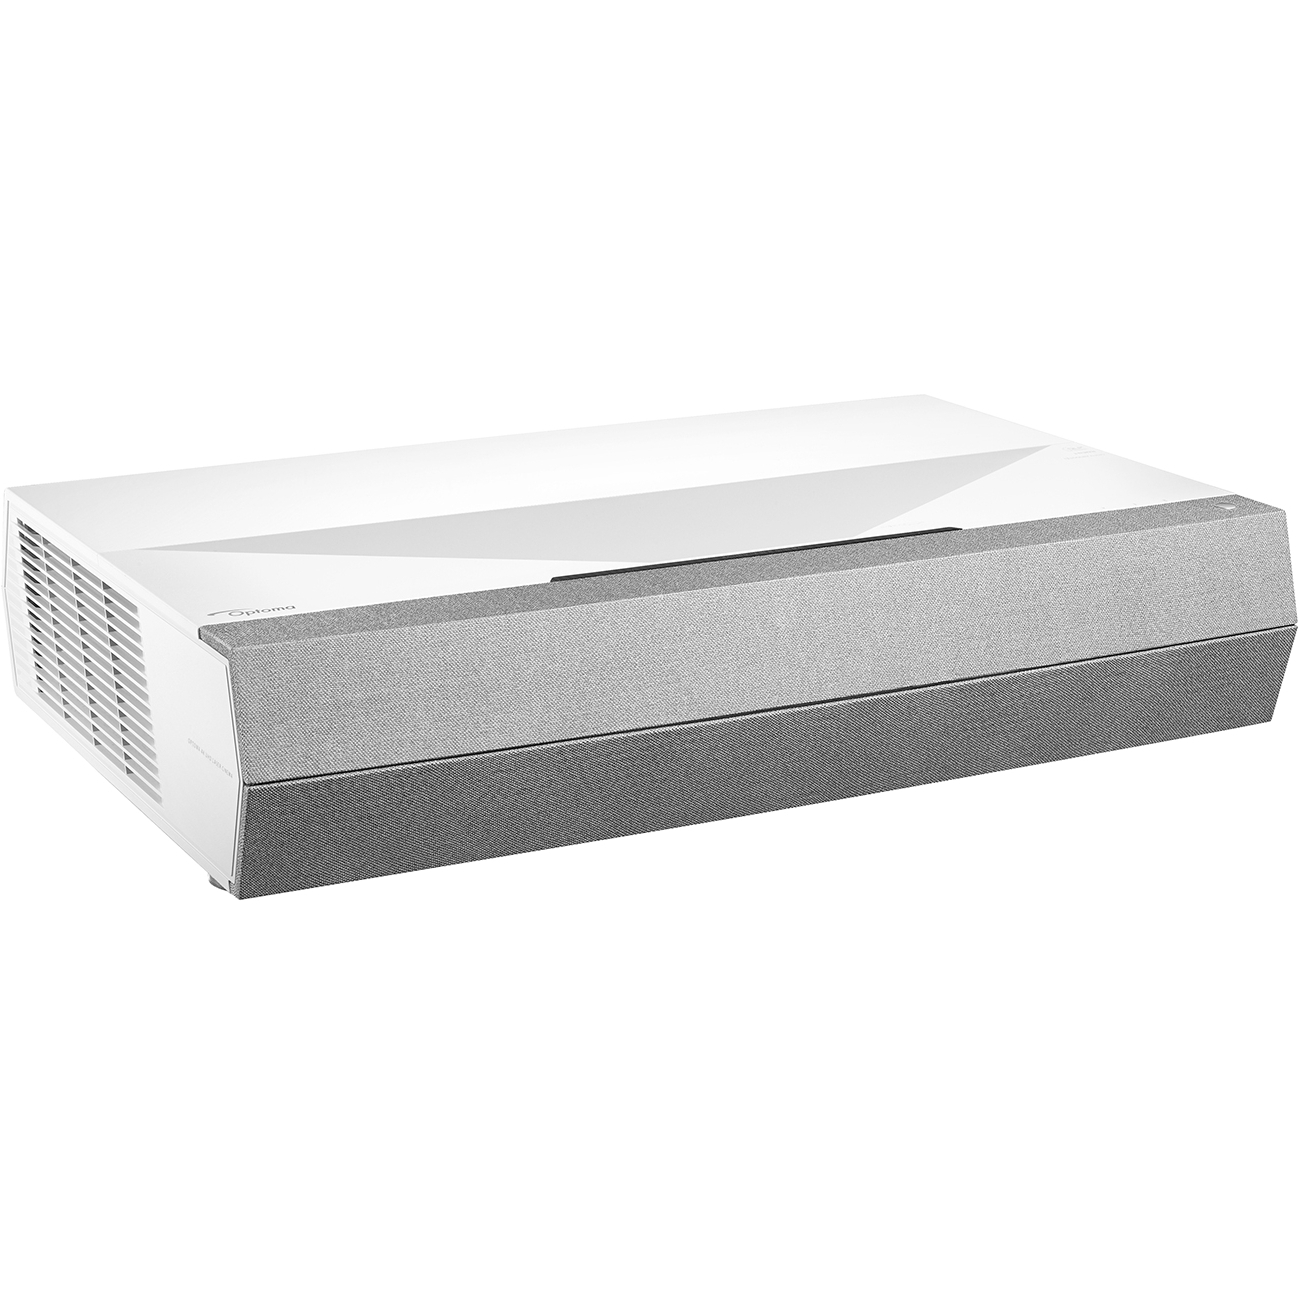 Optoma CINEMAX-P2 3D Ready Ultra Short Throw Laser Projector - 16:9_subImage_1